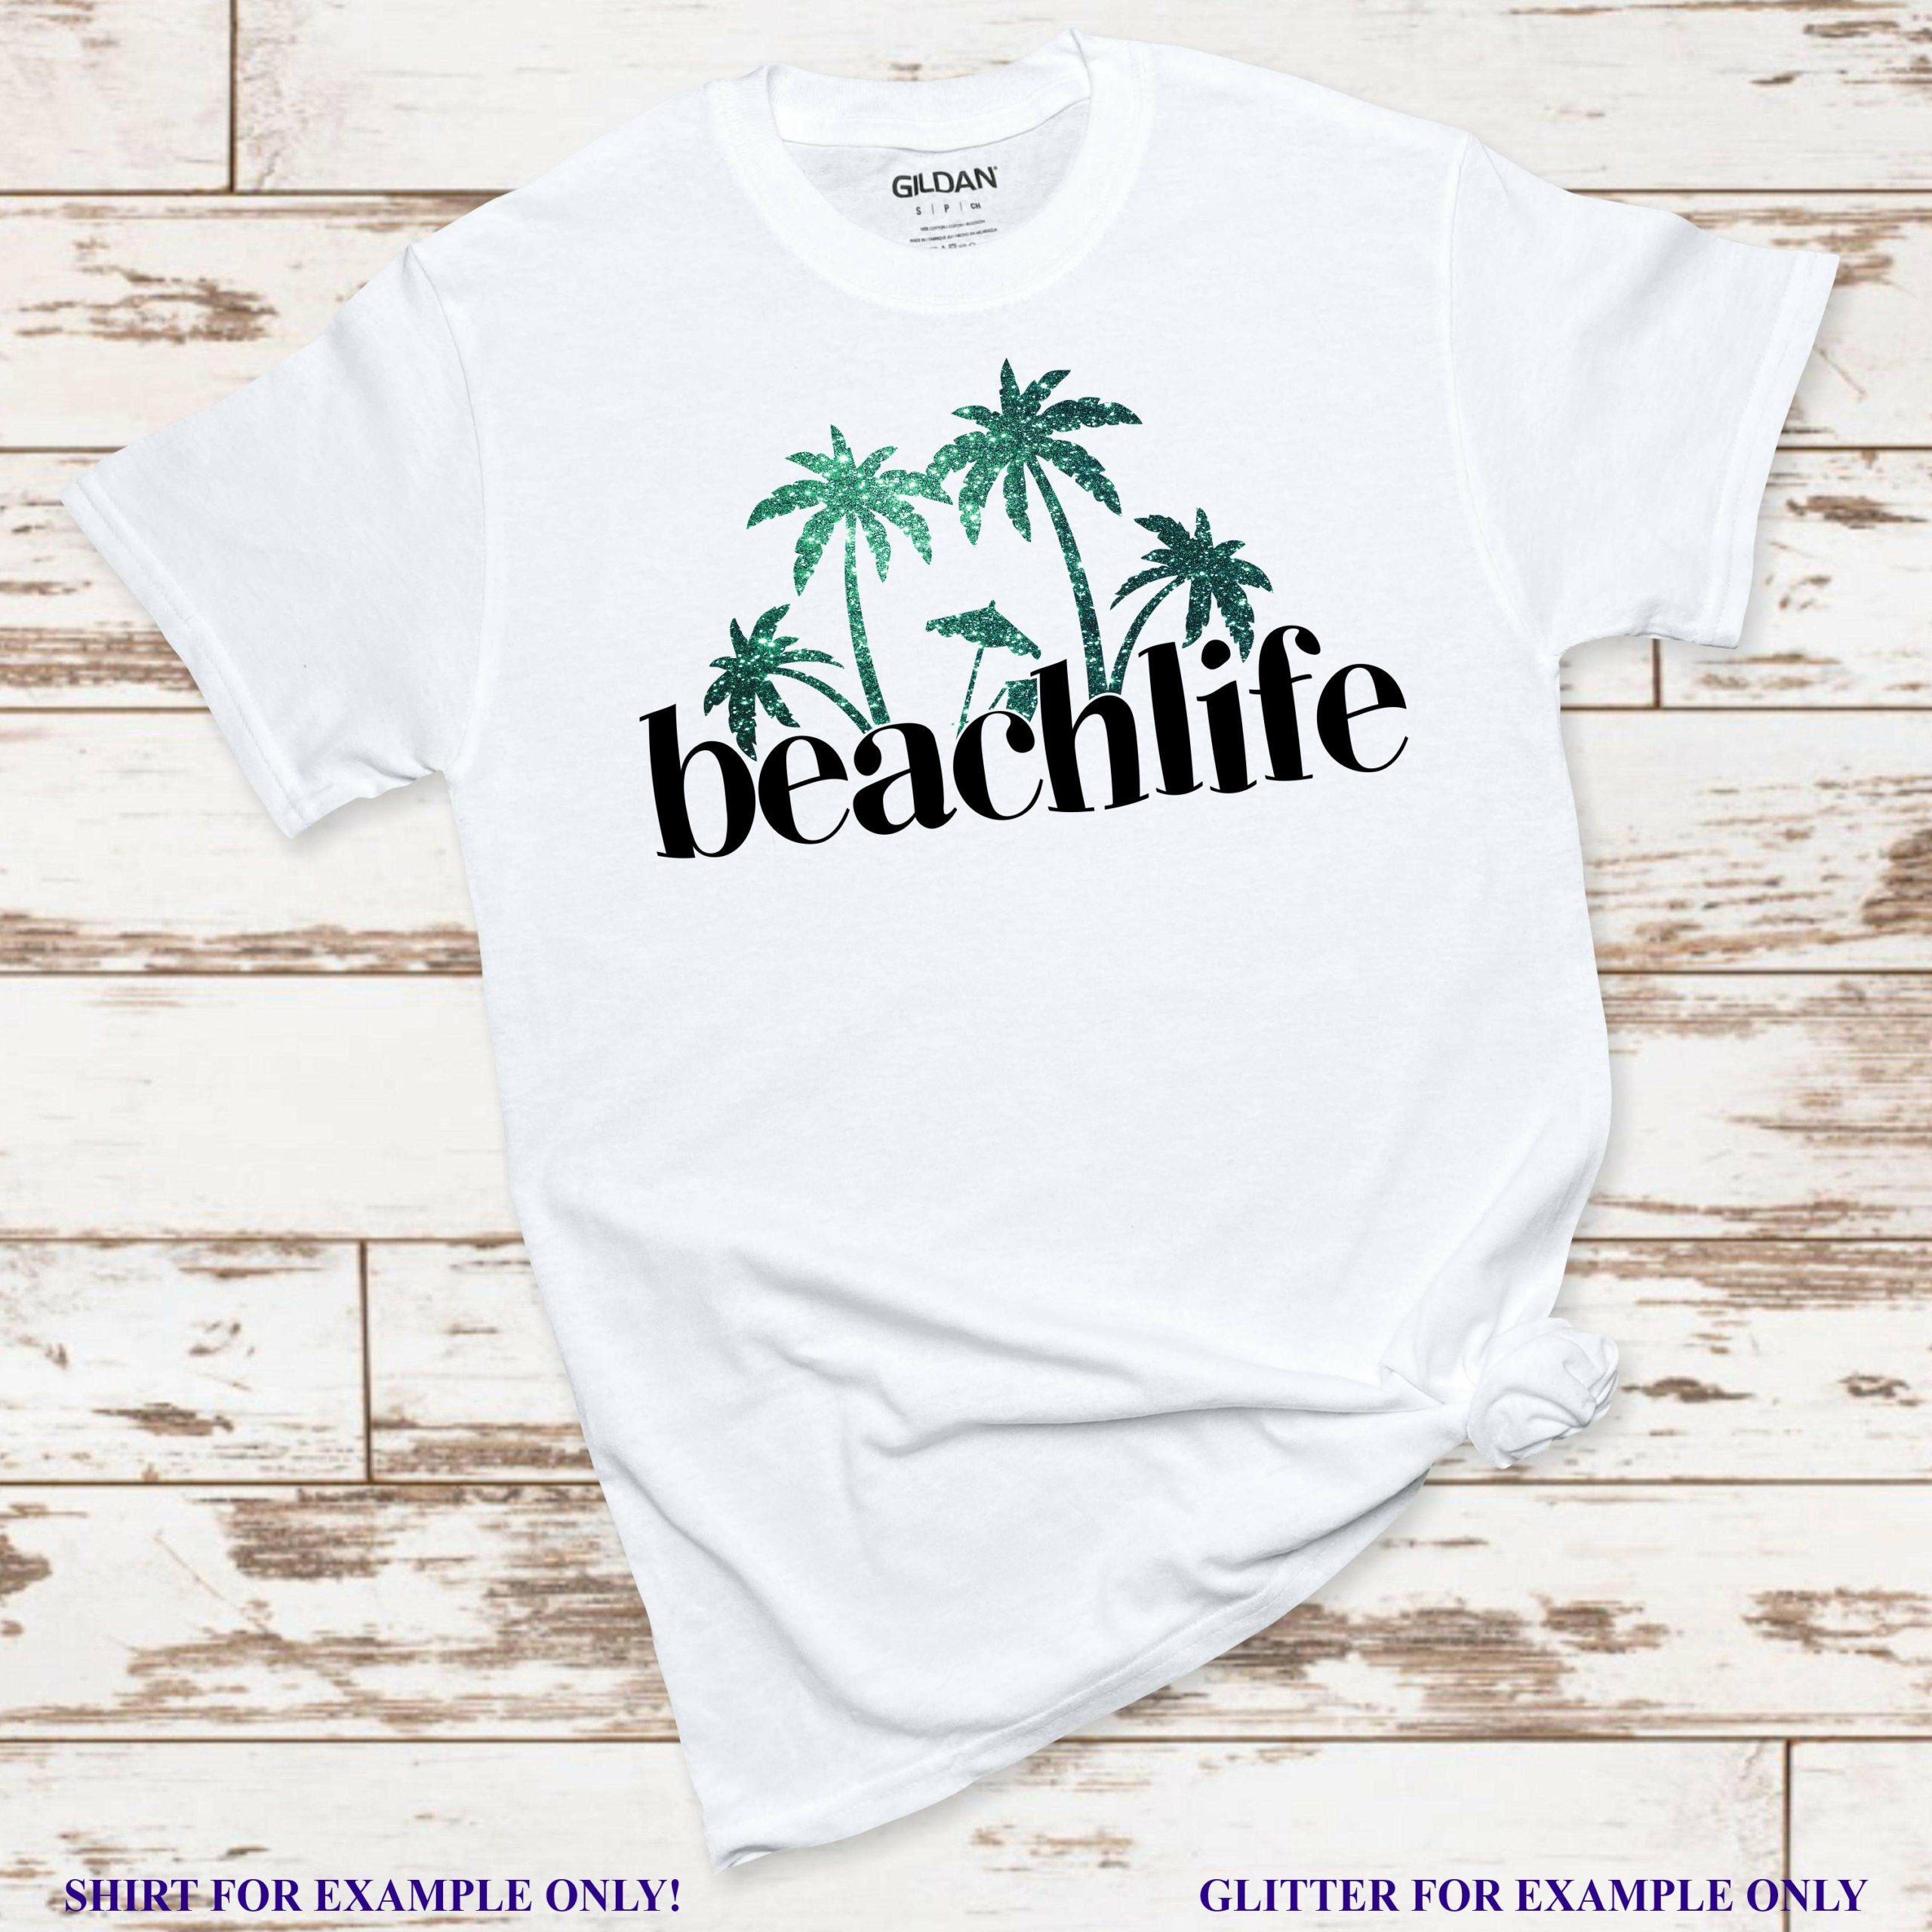 Beach-life-svg-beach-svg-beachin-life-svg-beachy-svg-vacation-svg-tshirt-travel-adventure-svg-for-cricutsilhouette-cut-file-5ef78bcc